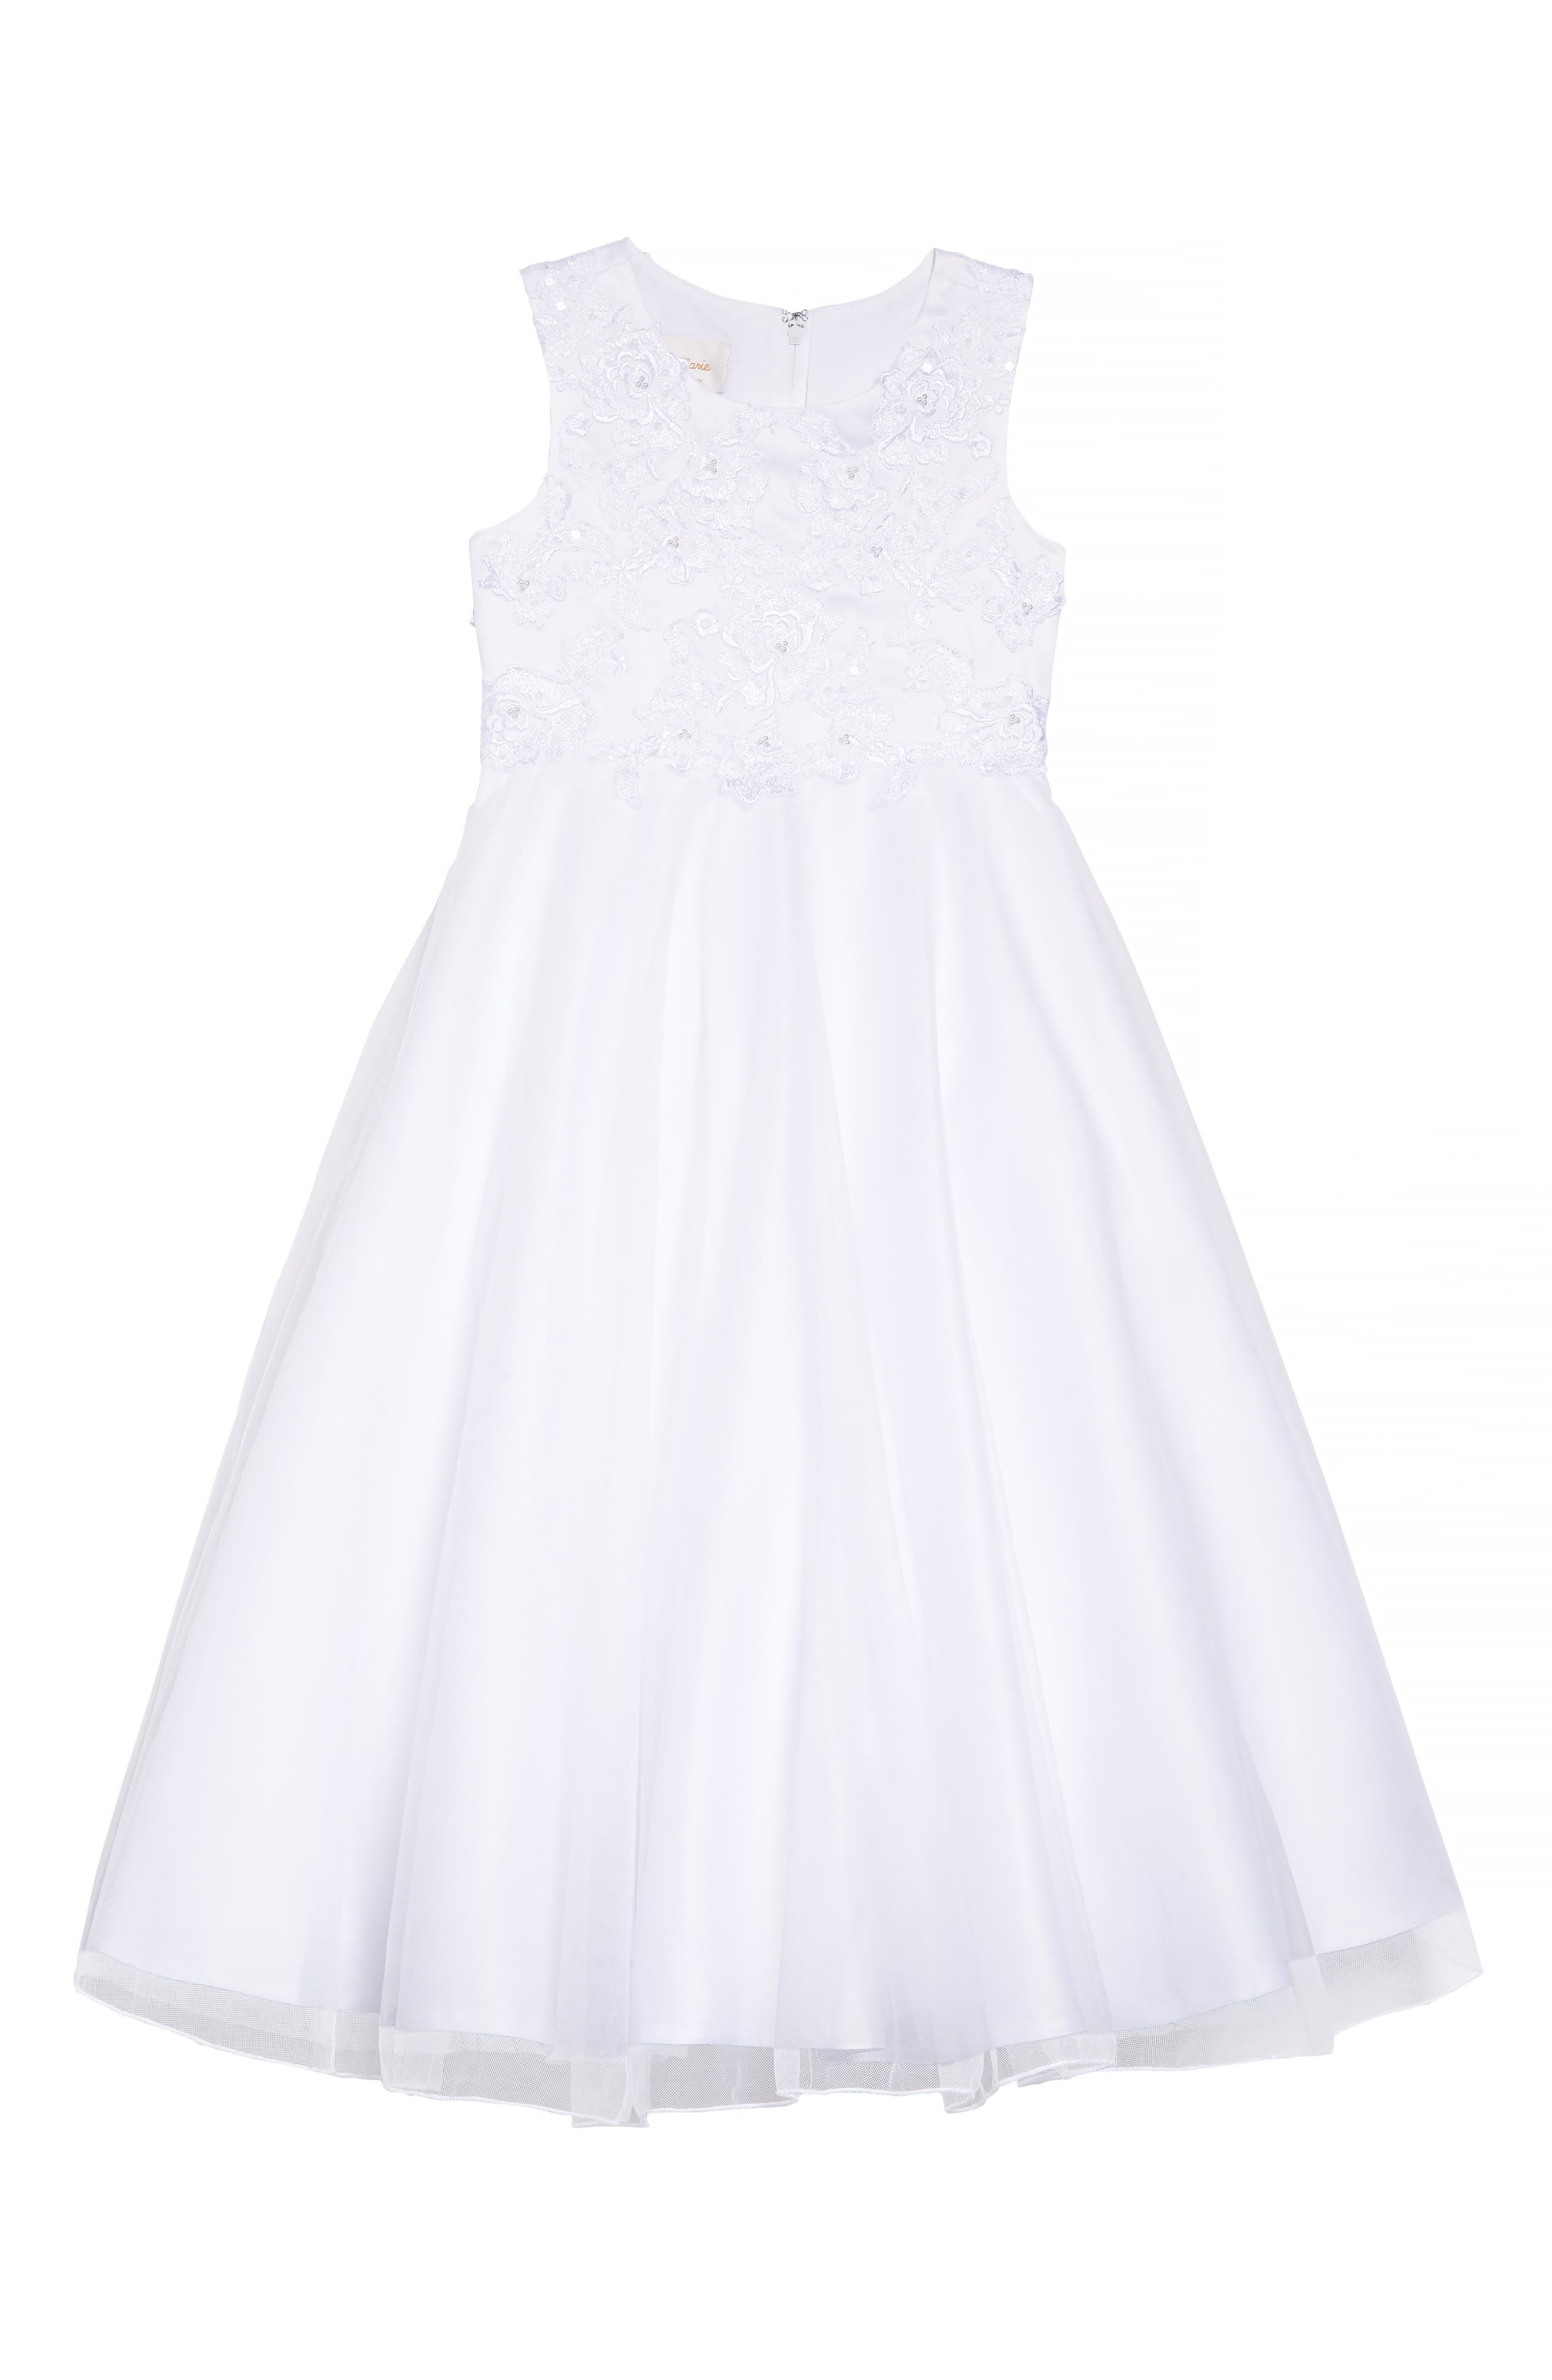 LAUREN MARIE, Embroidered Bodice Tulle Dress, Main thumbnail 1, color, WHITE